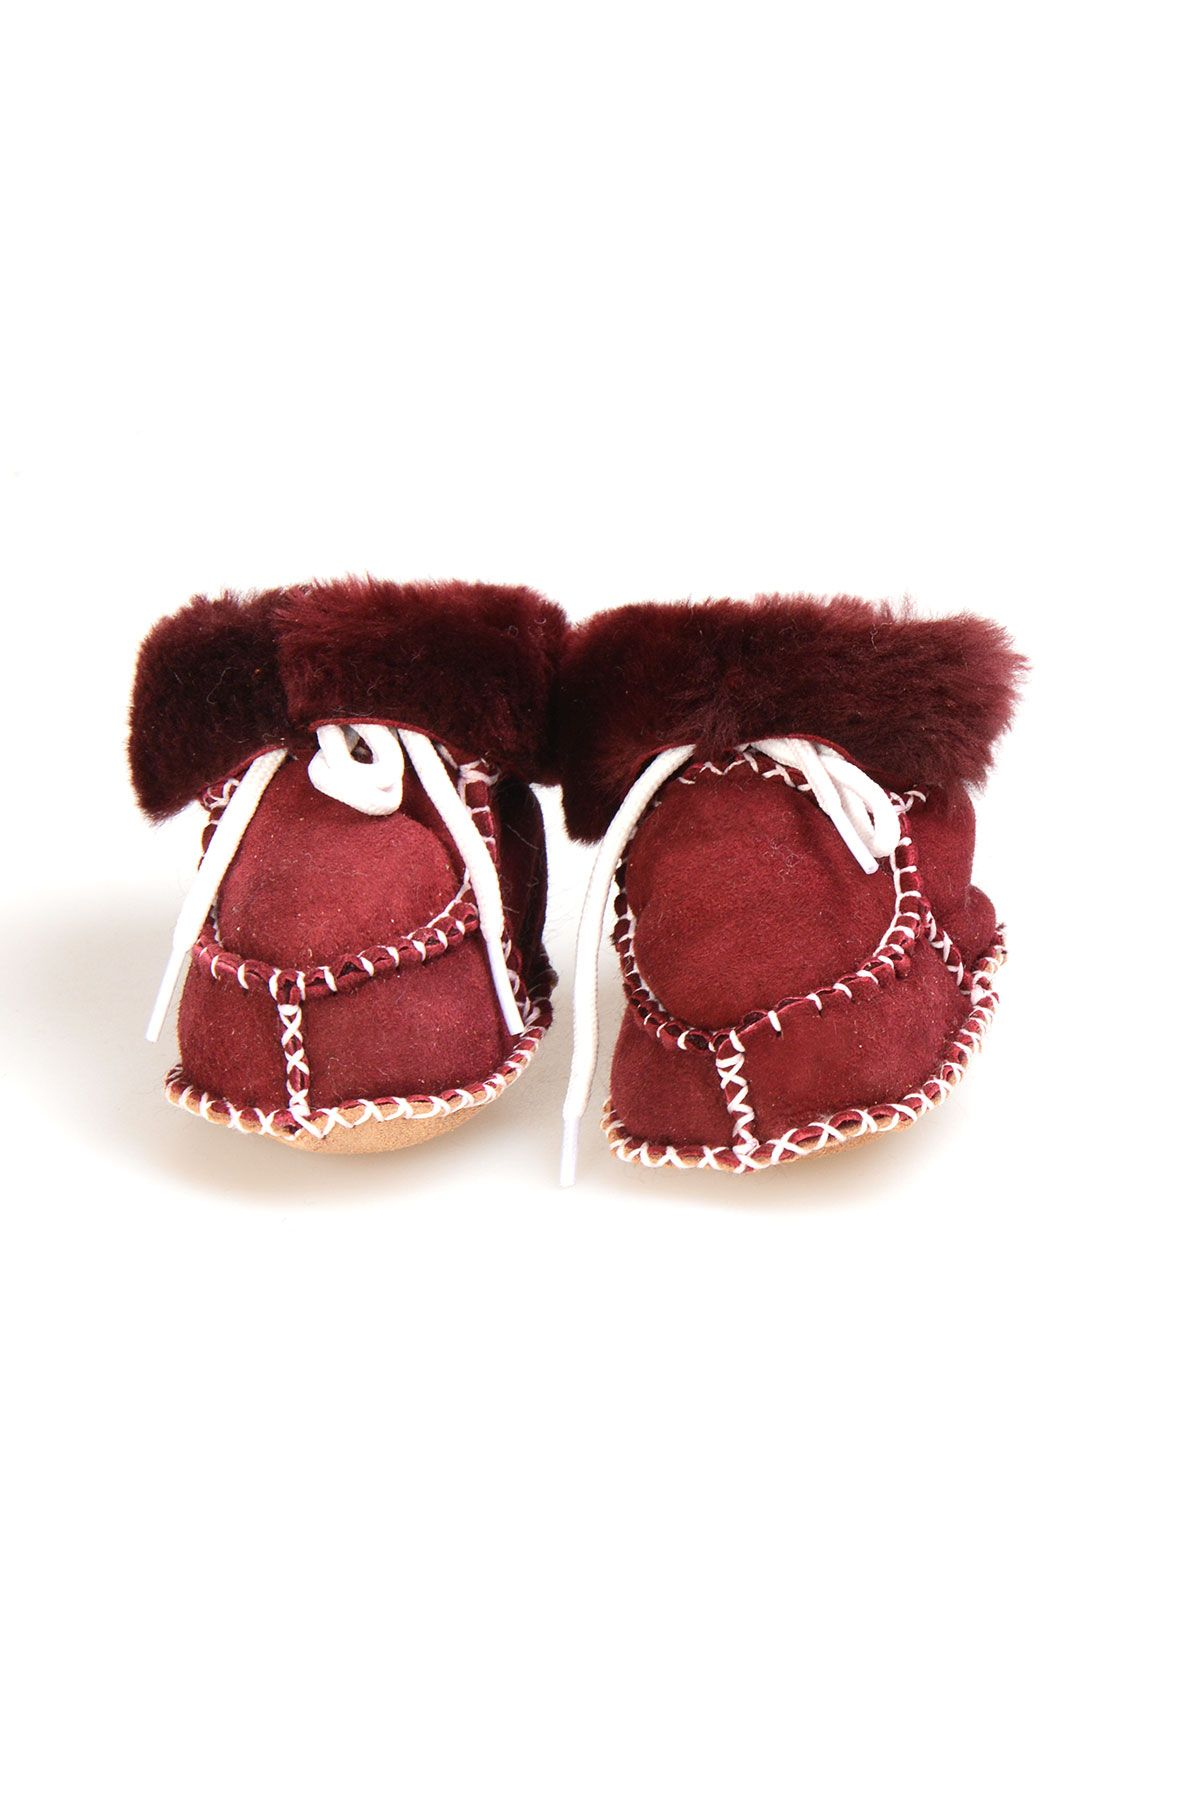 Pegia Shearling Baby's Laced Booties 141105 Claret red